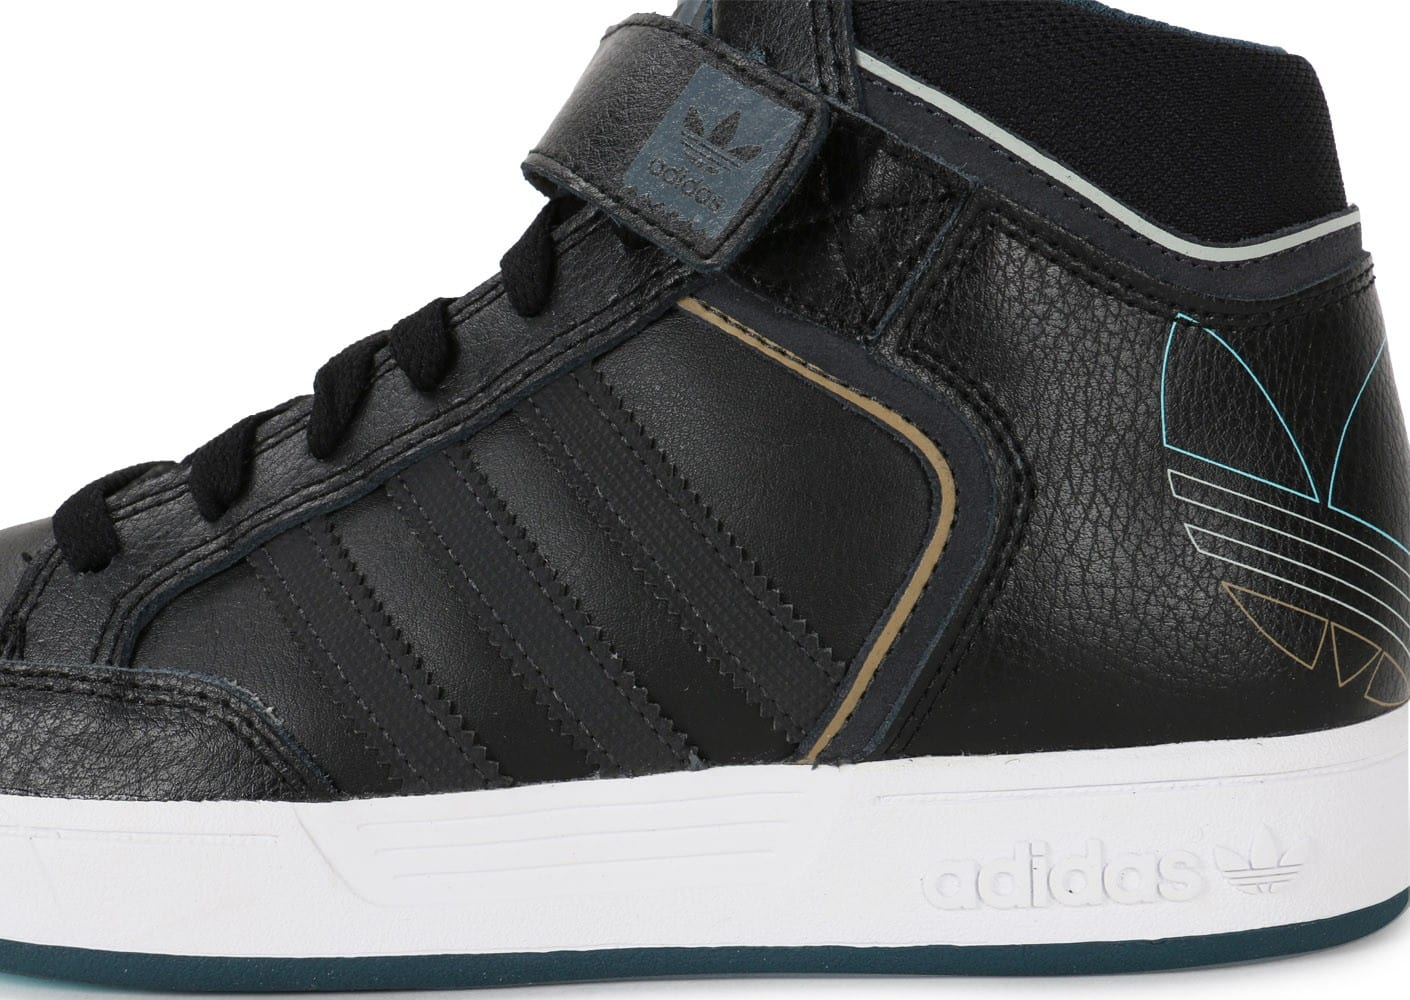 adidas Varial Mid Junior noire Chaussures adidas Chausport